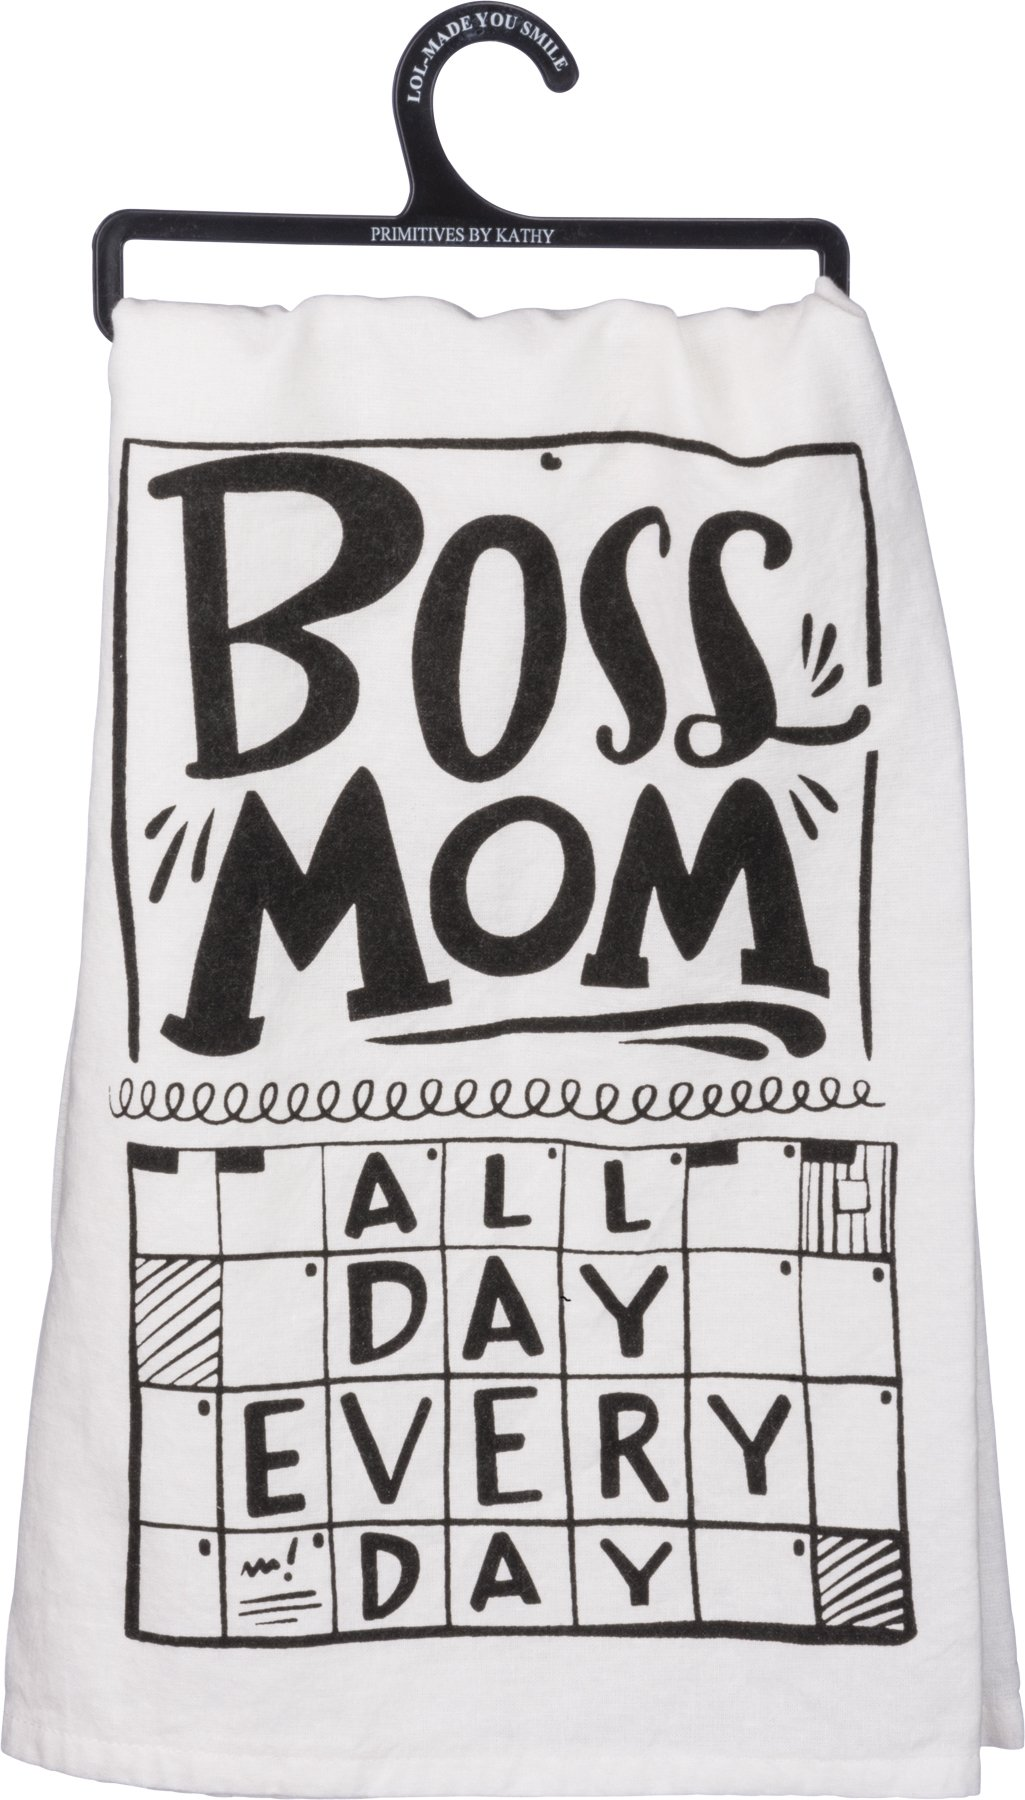 Primitives by Kathy Boss Mom All Day Every Day Cotton Towel